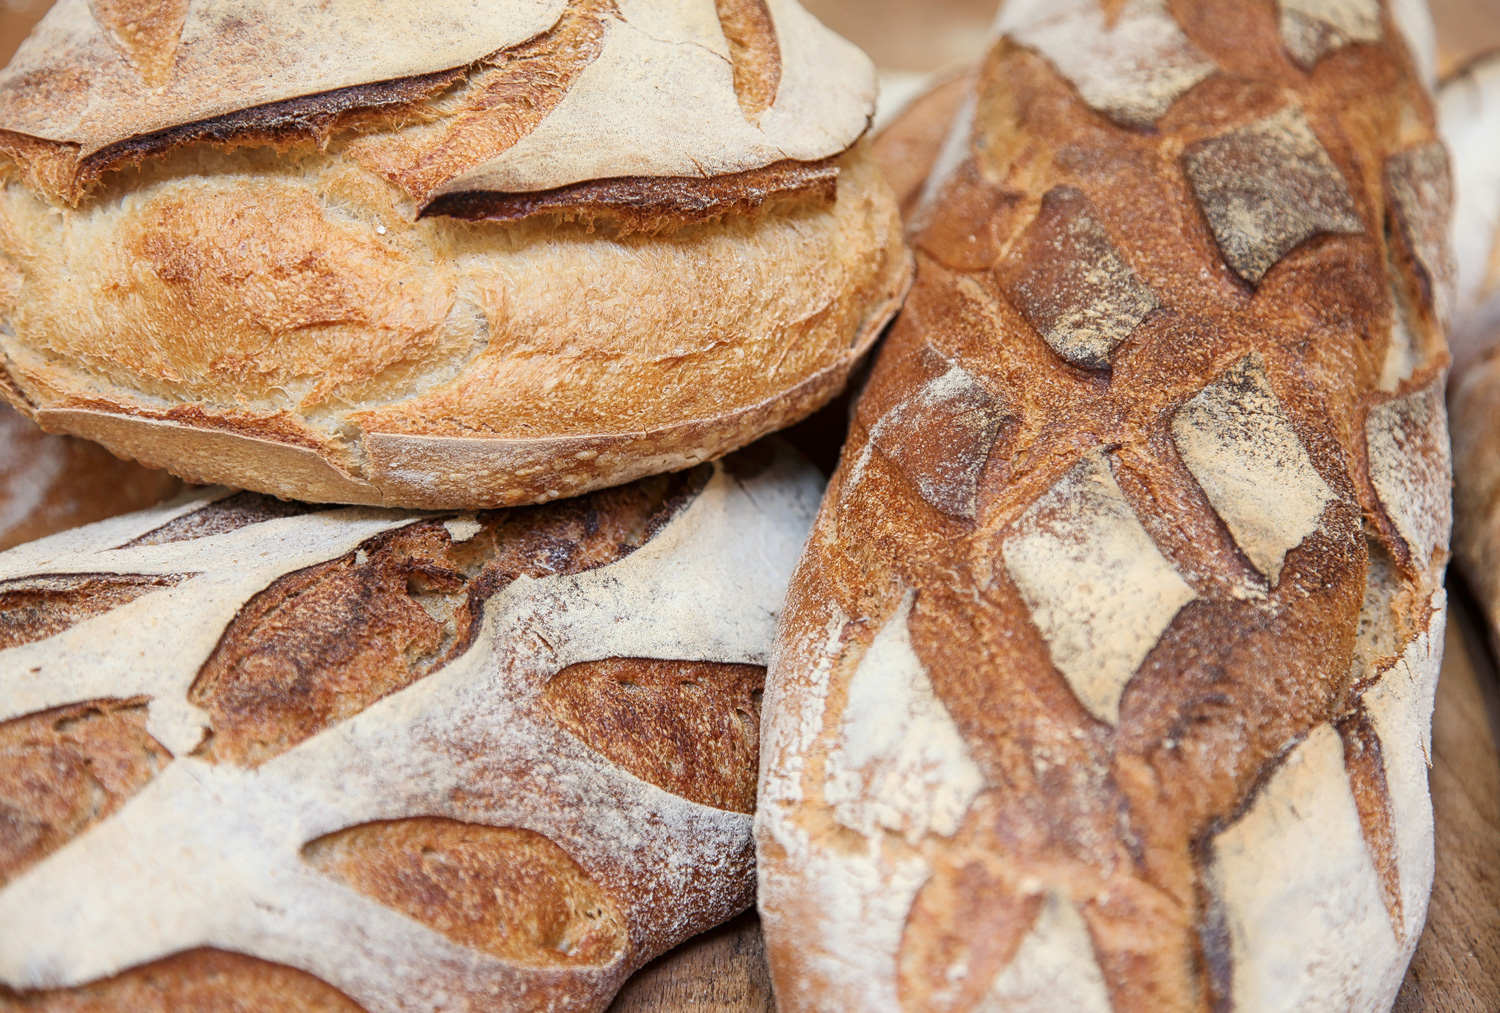 boulangerie-jade-products-breads9.jpg